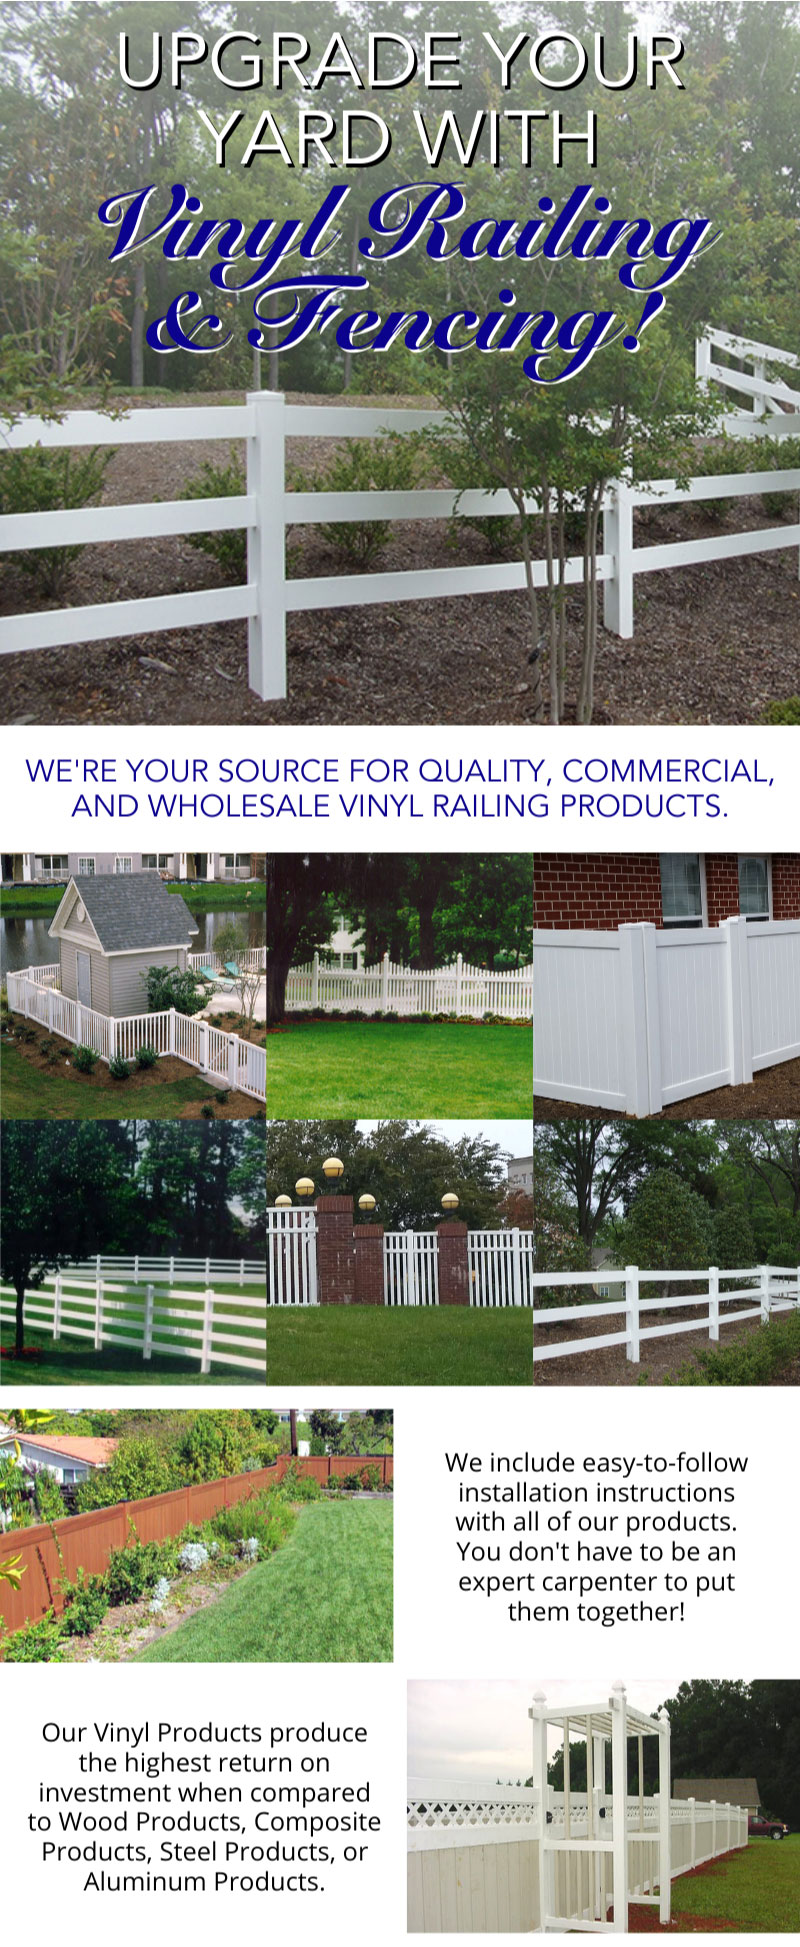 Upgrade Your Yard With Our Vinyl Fencing! 1